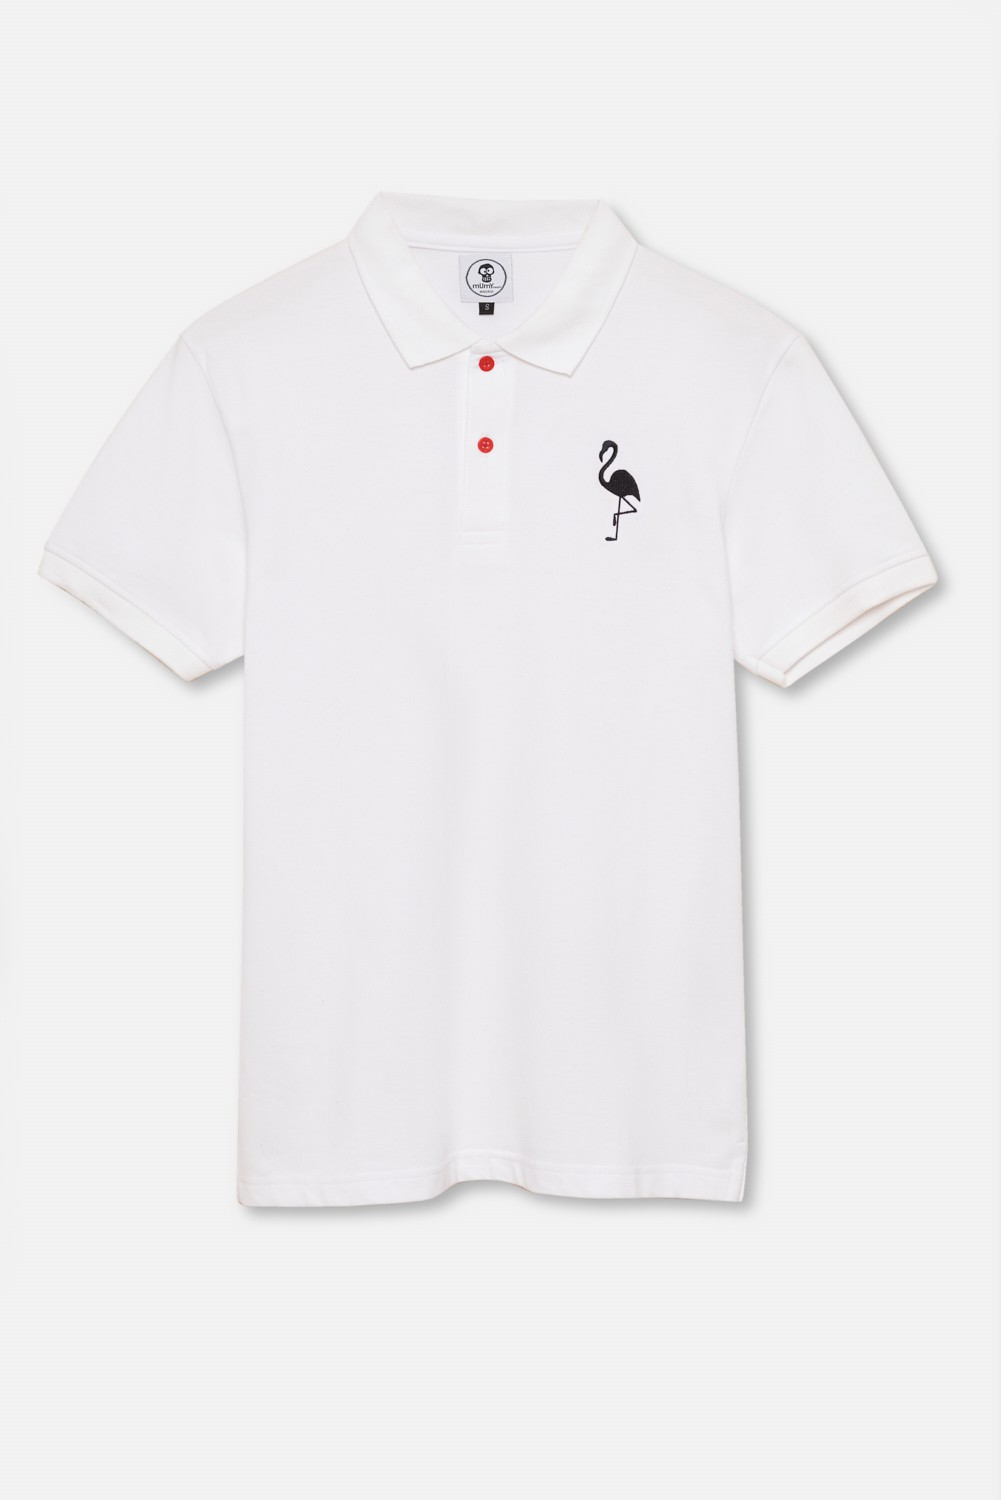 ADULT´S EMBROIDERED POLO BLACK FLAMENCO IN WHITE